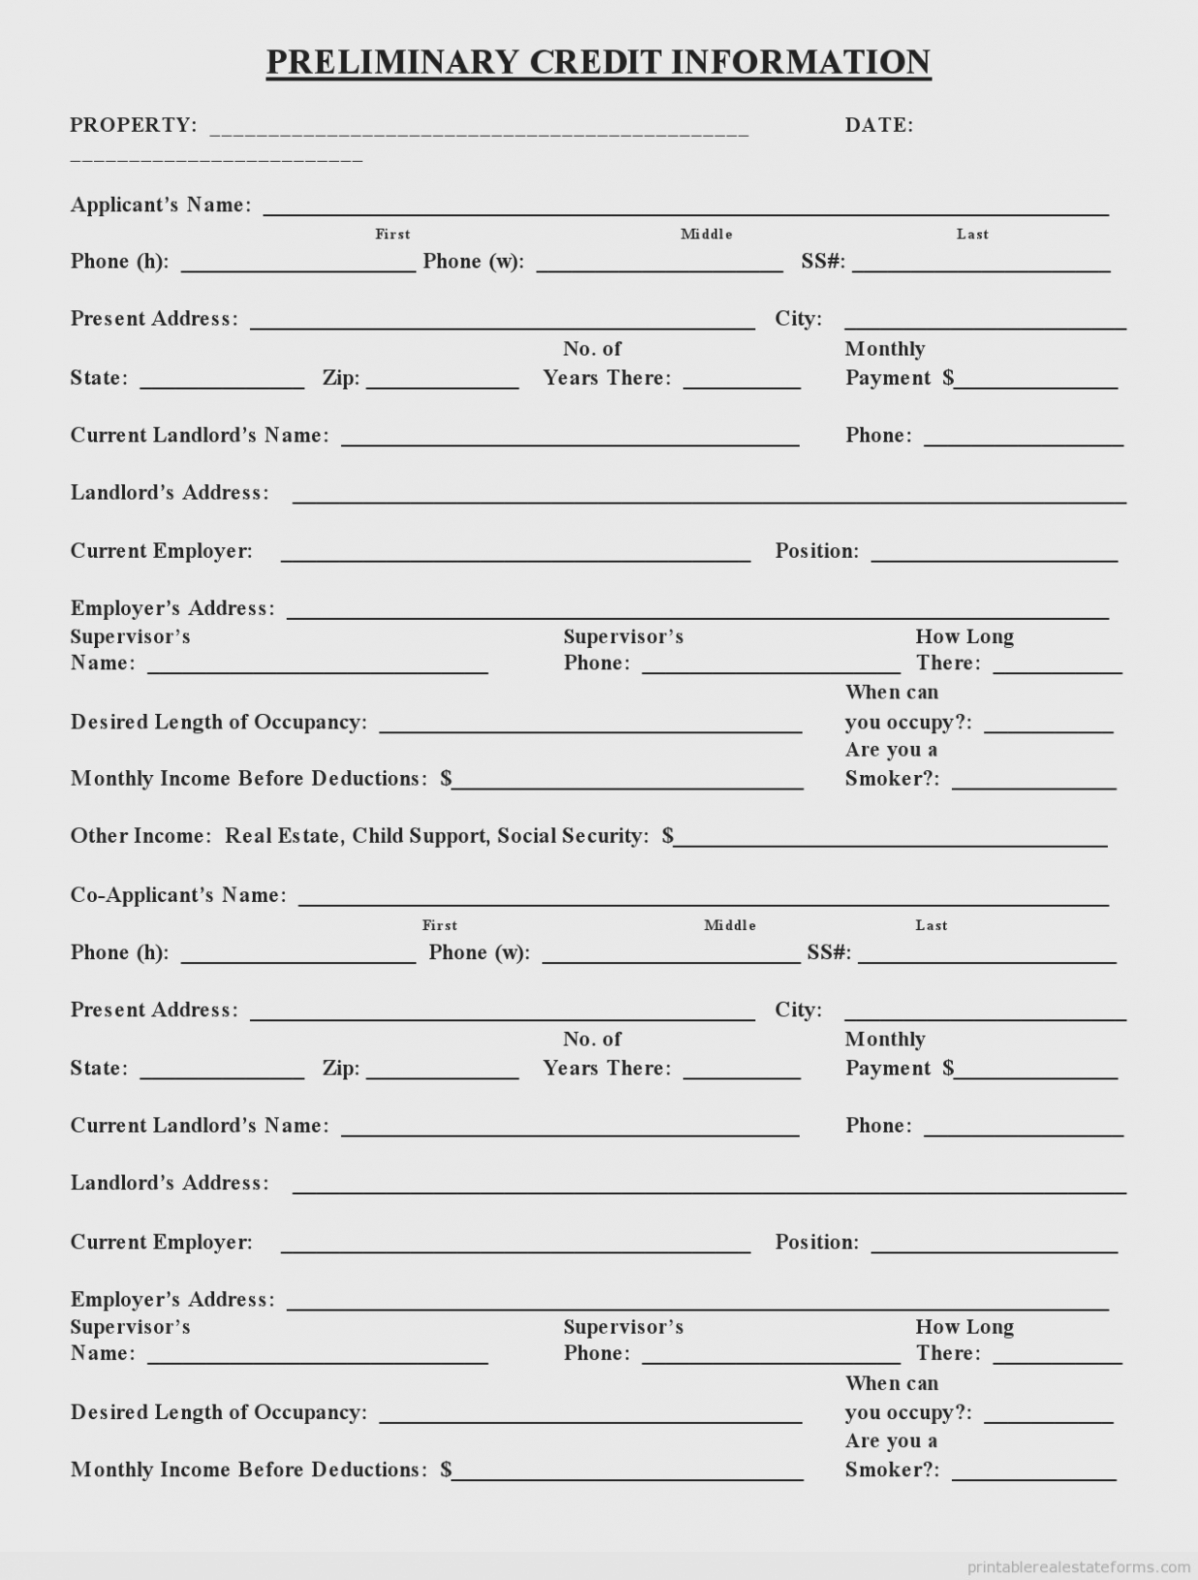 Transunion Printable Dispute Form 13 Best S Of Free Credit Report - Free Printable Credit Report